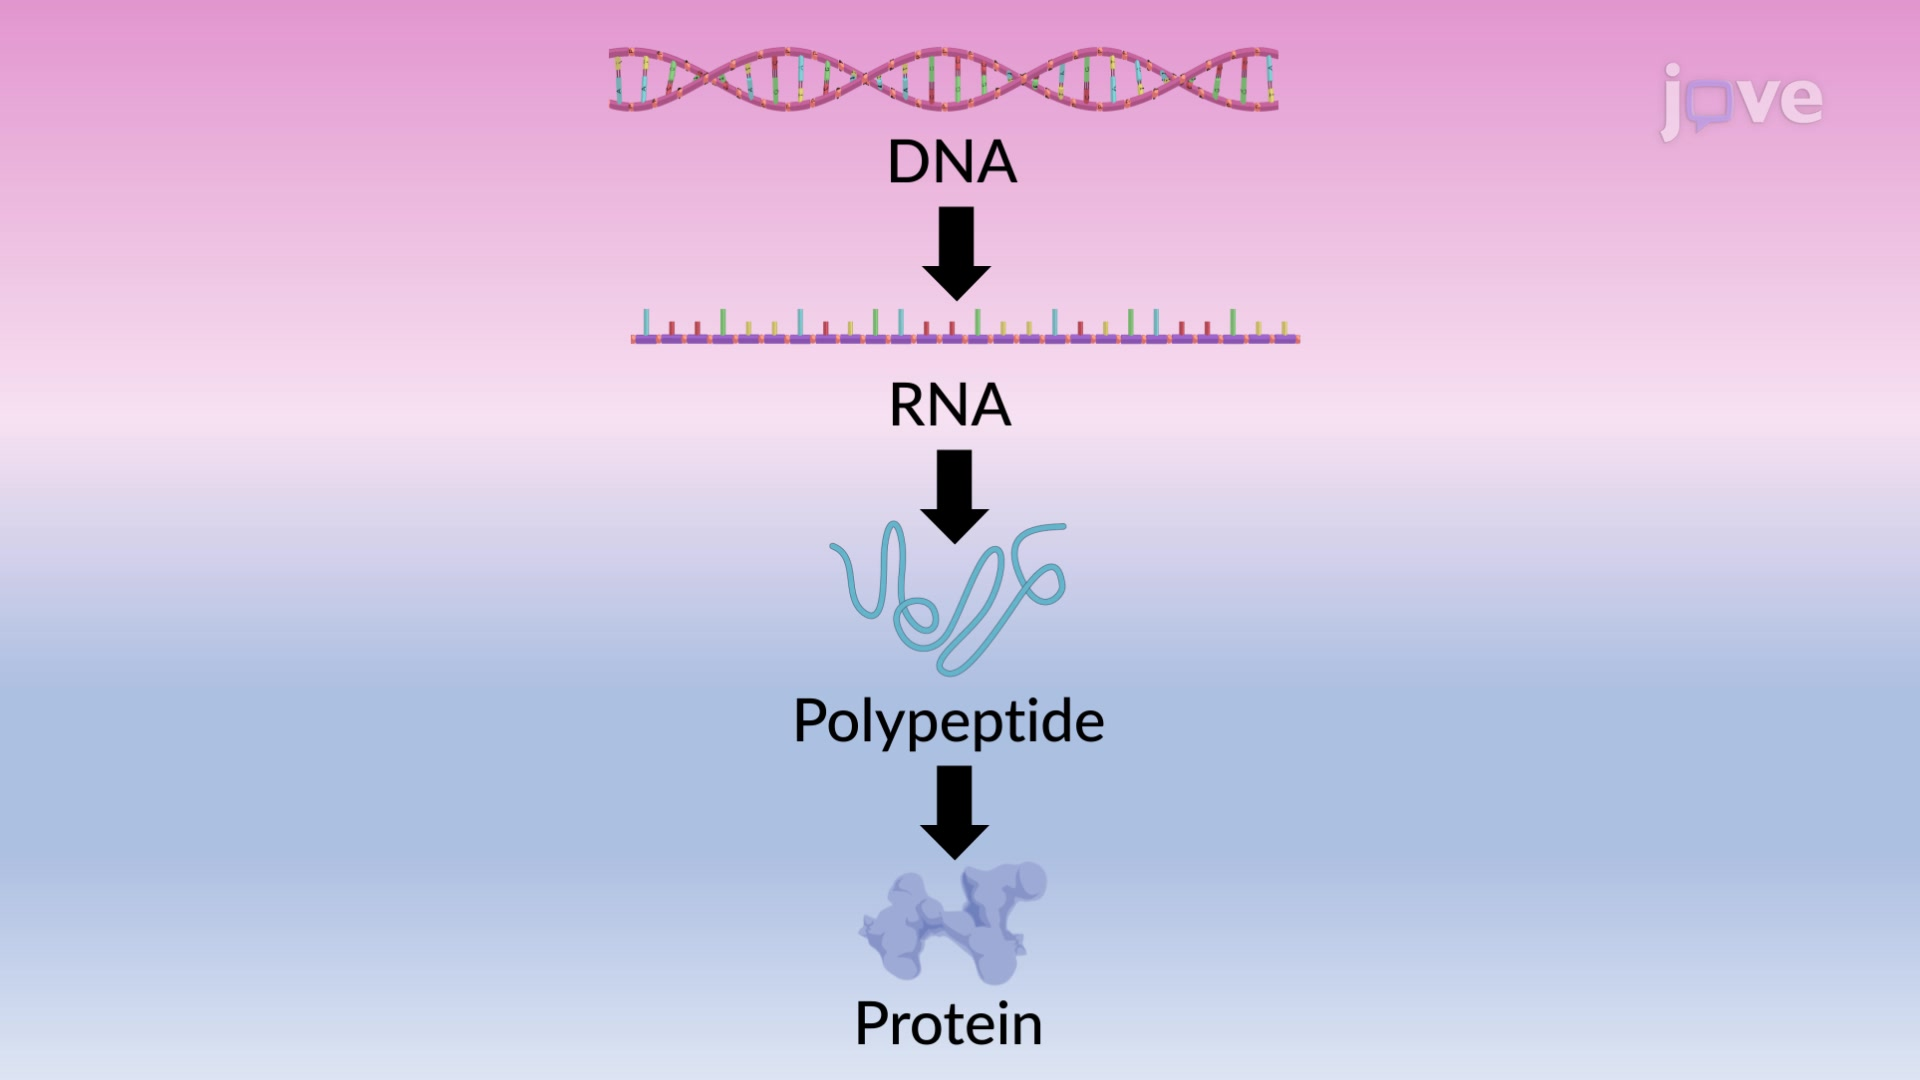 Proteins: From Genes to Degradation